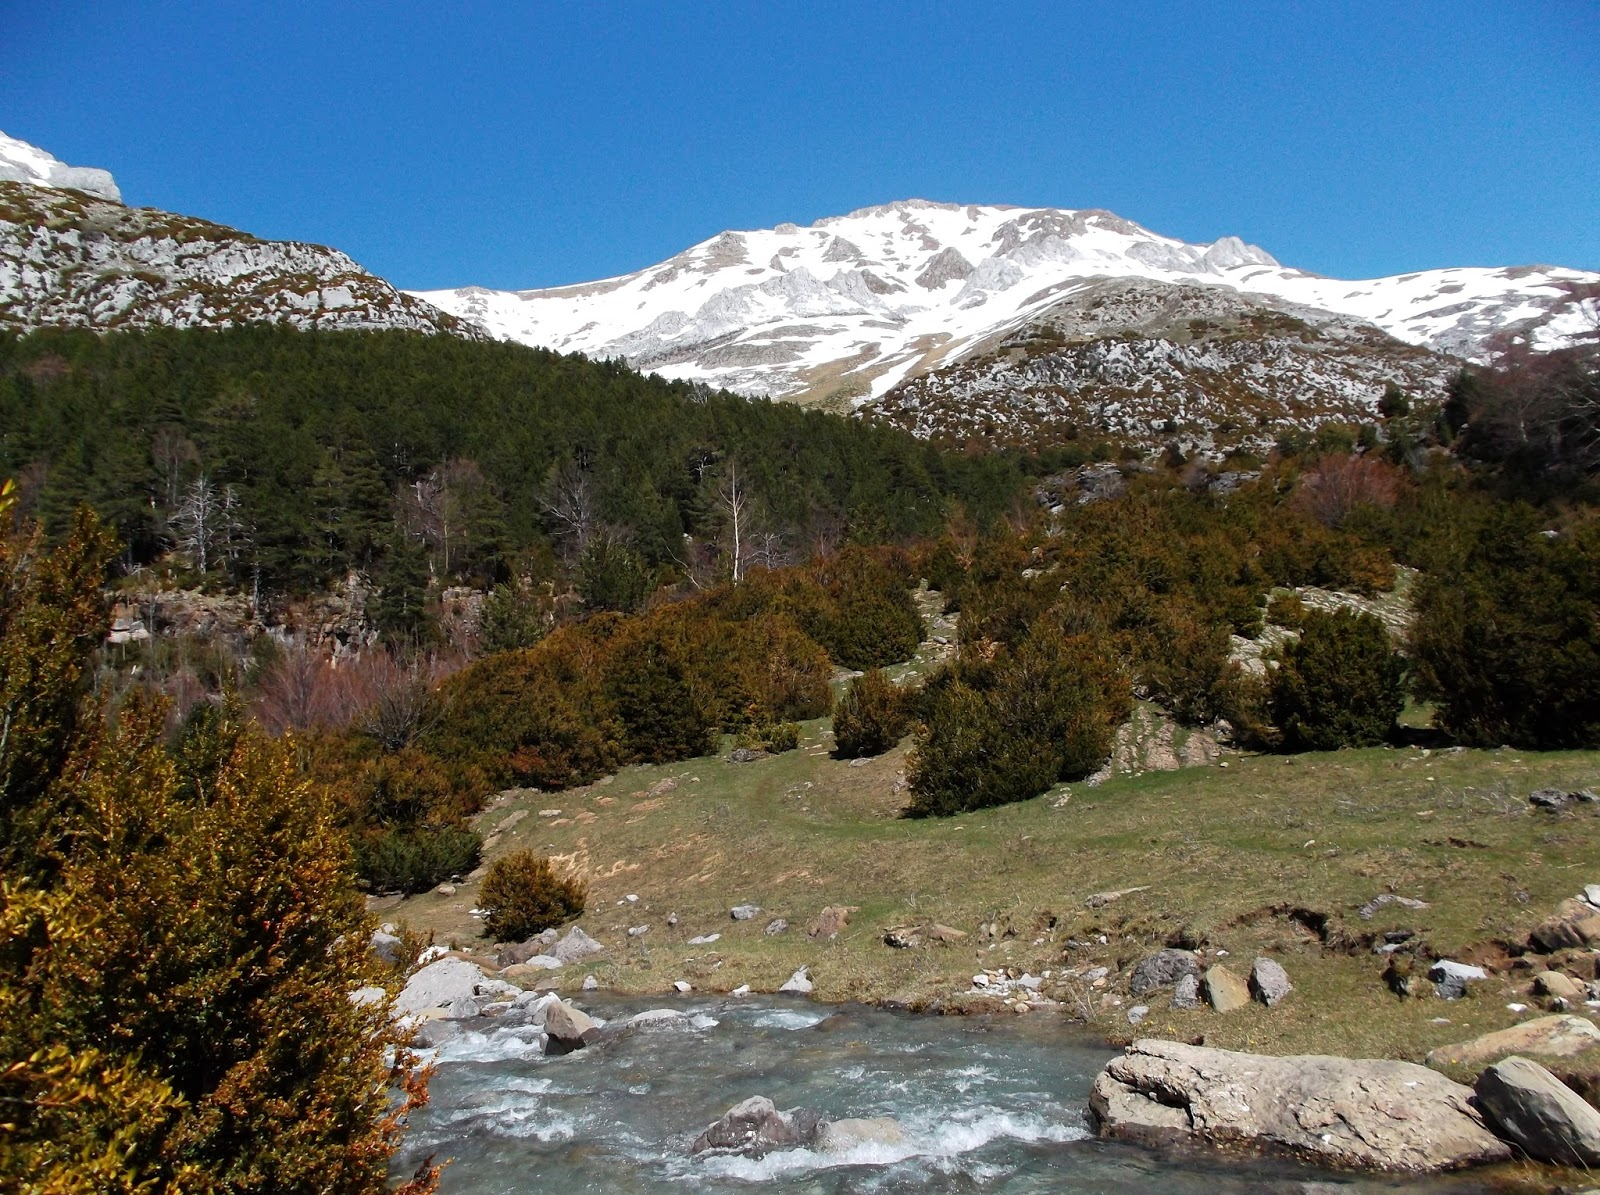 Pyrenees - Northern Spain